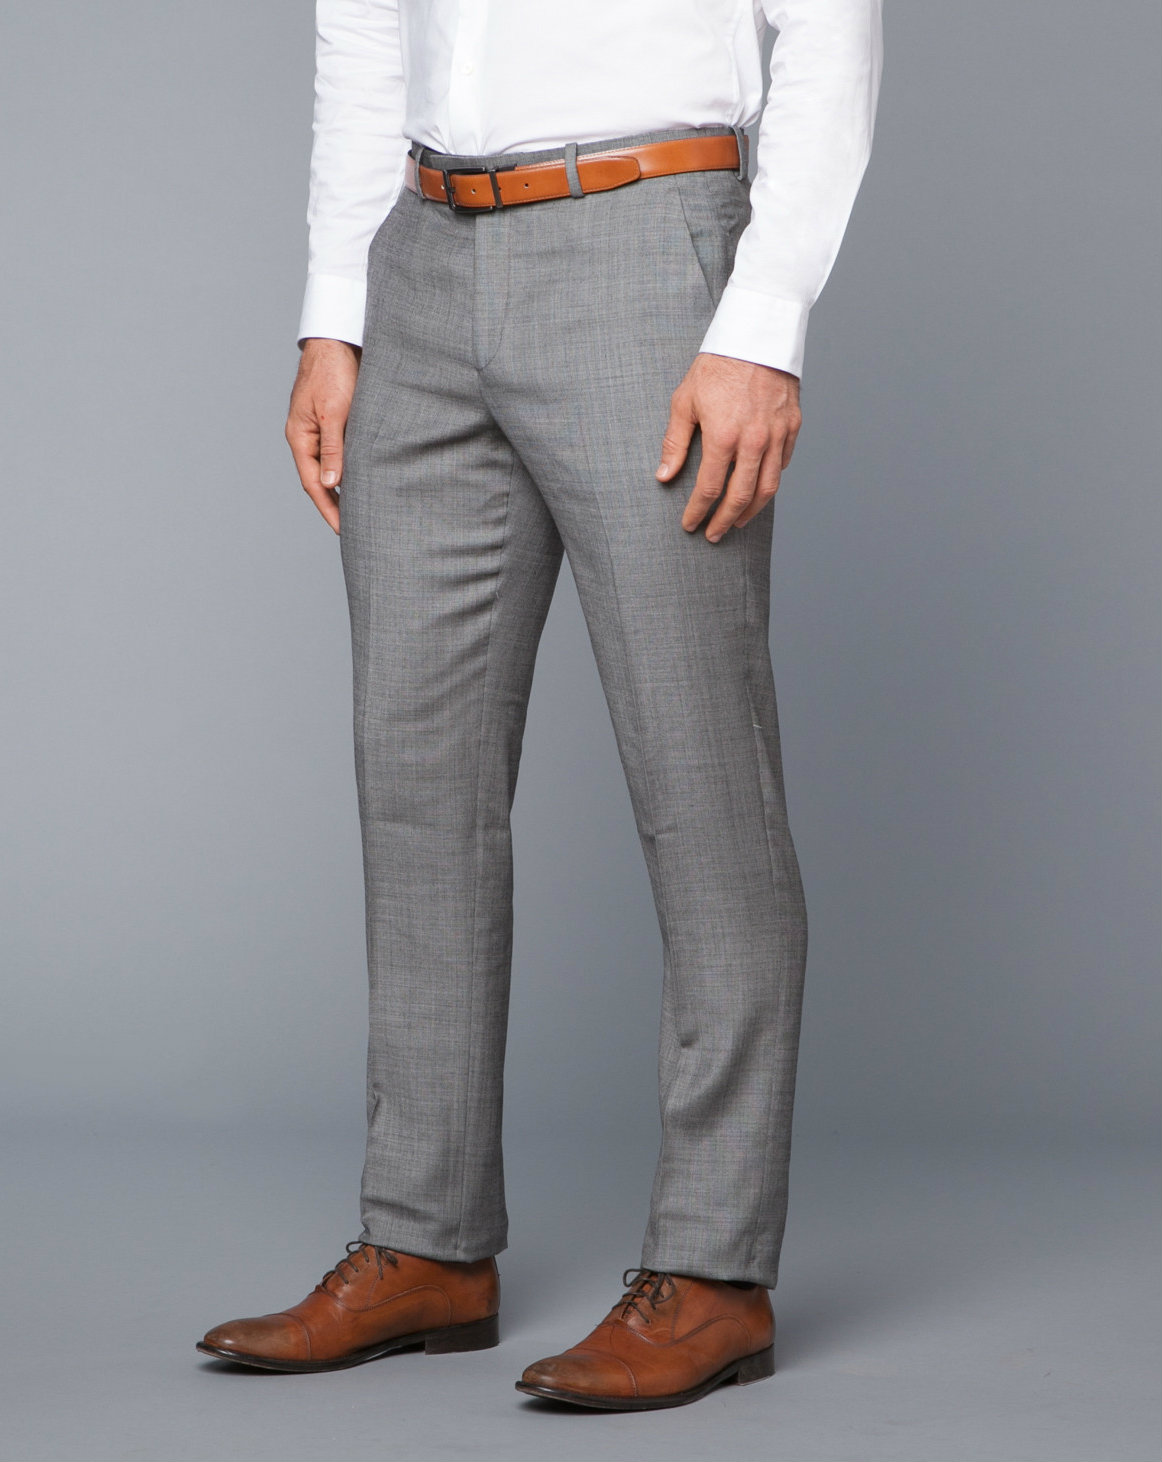 Shop a great selection of Dress Pants for Men at Nordstrom Rack. Find designer Dress Pants for Men up to 70% off and get free shipping on orders over $